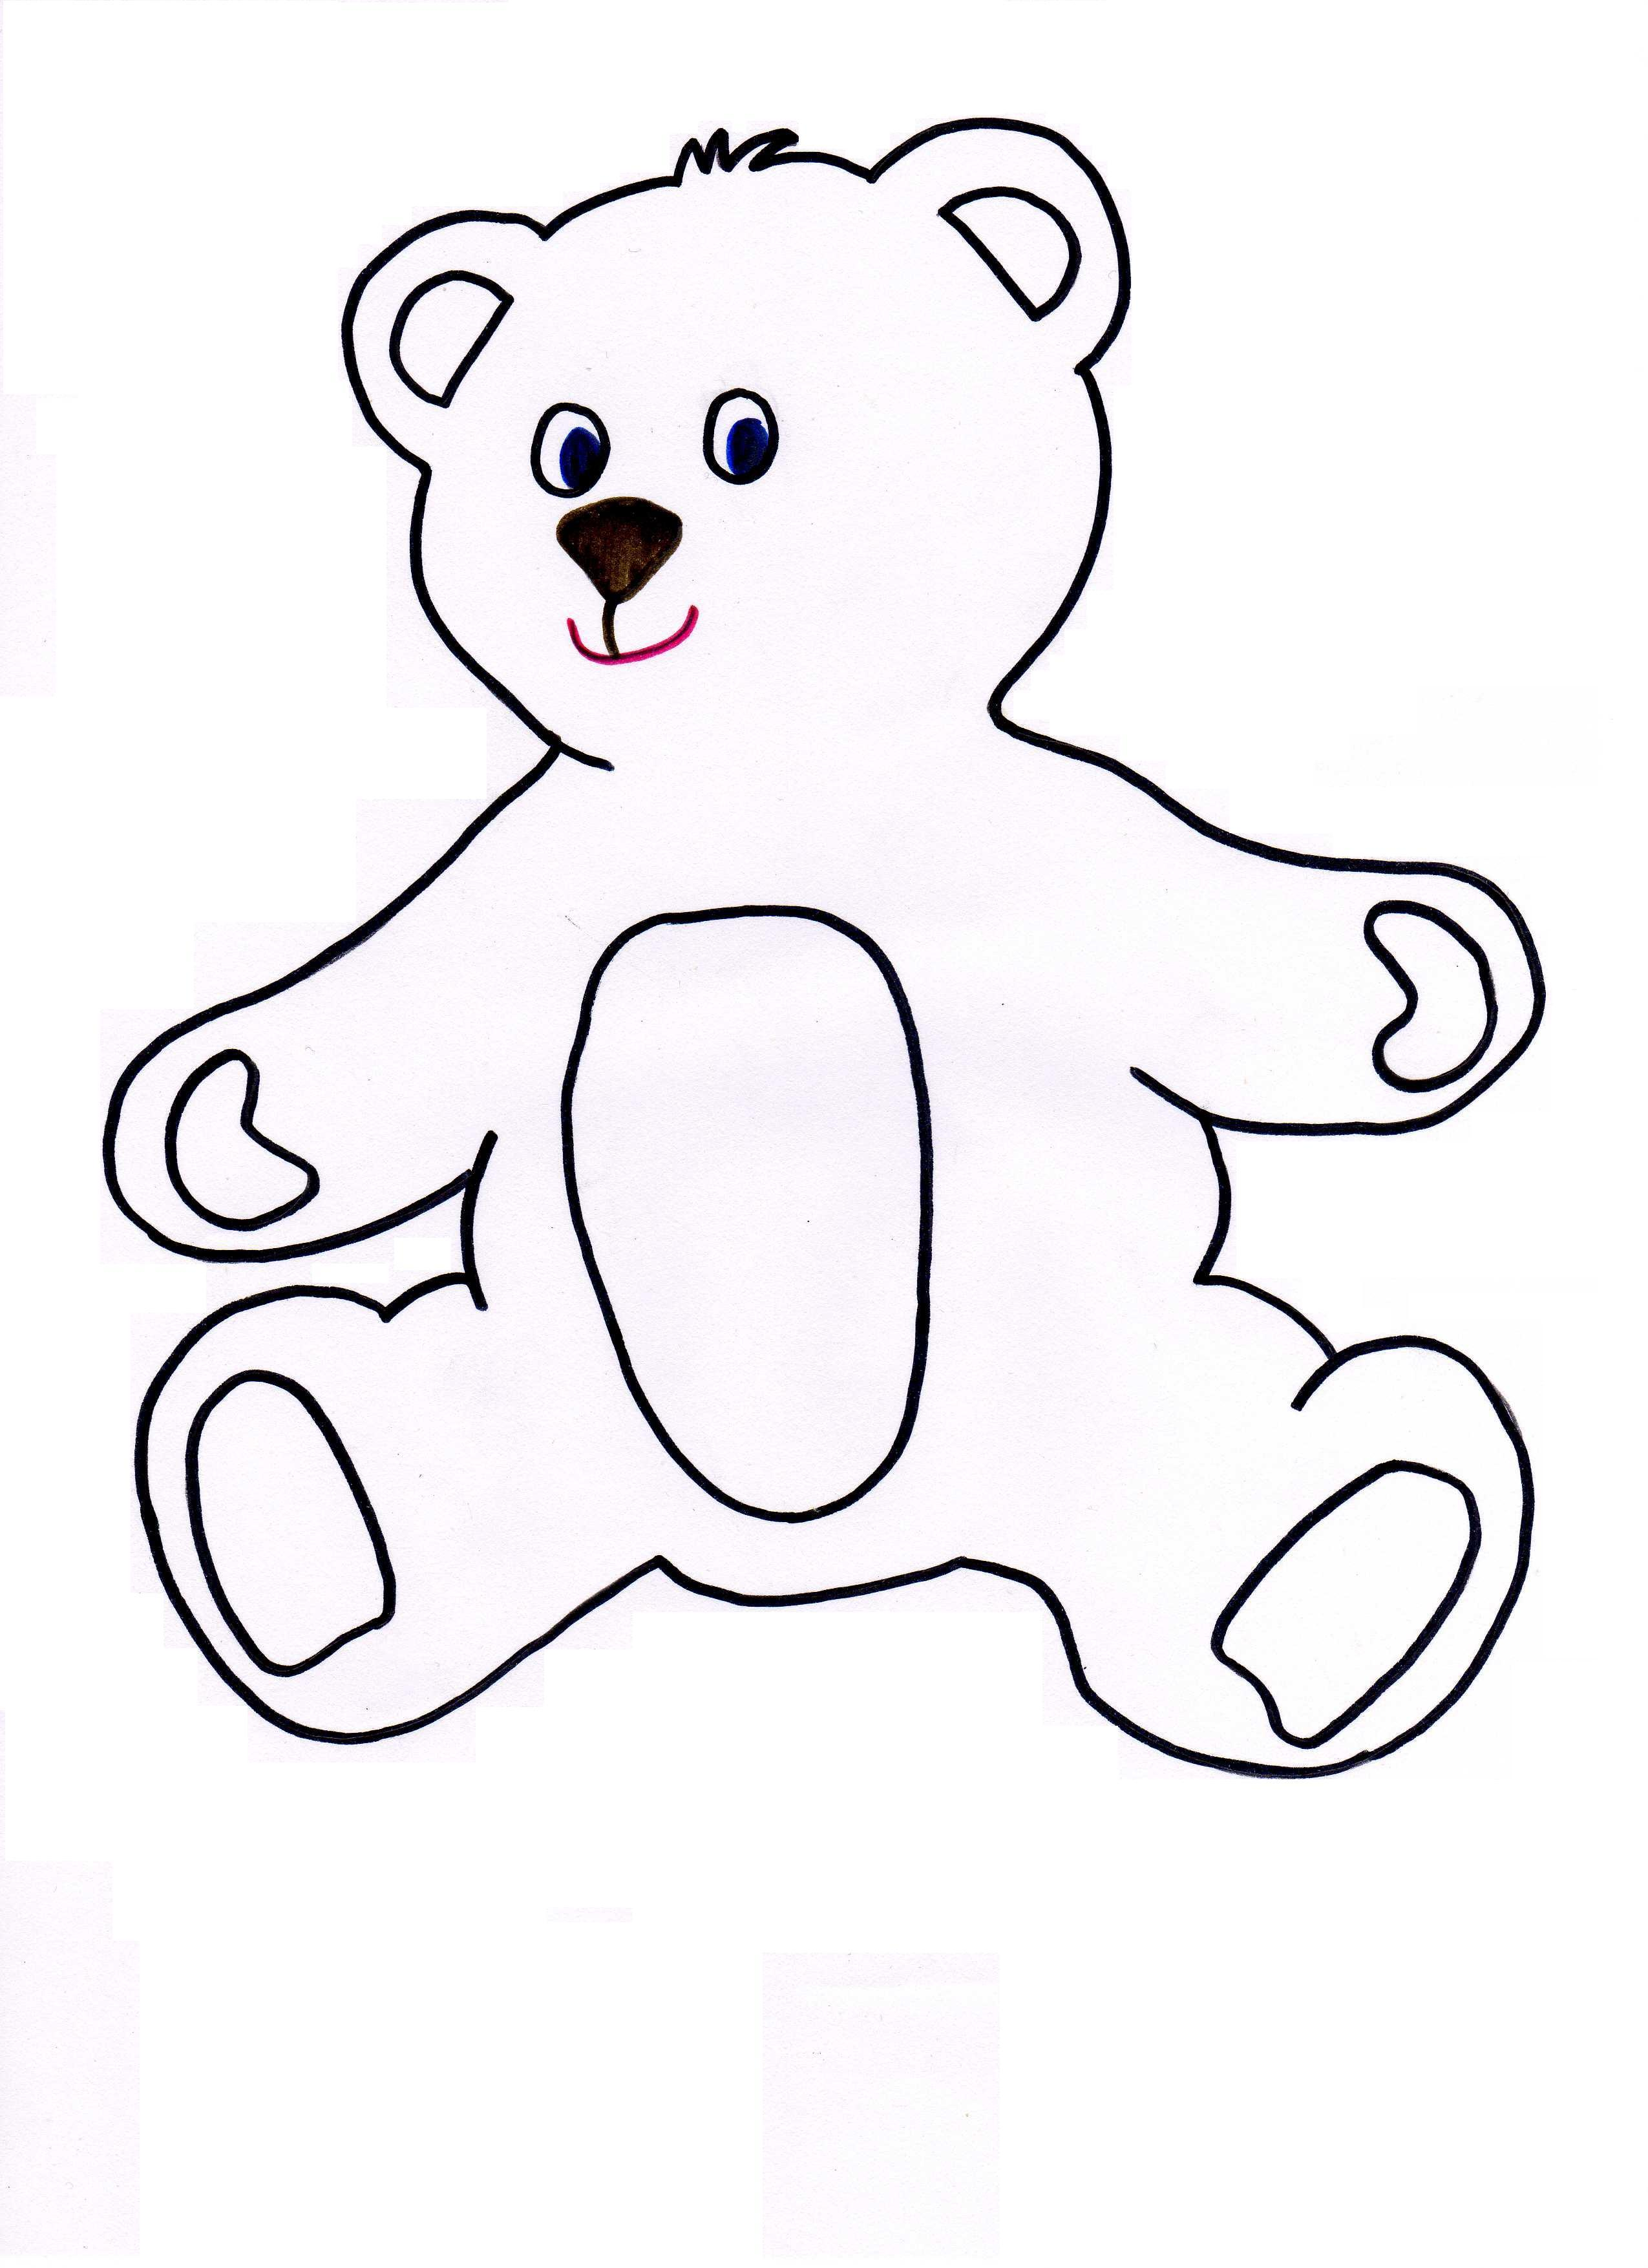 Outline Of A Teddy Bear